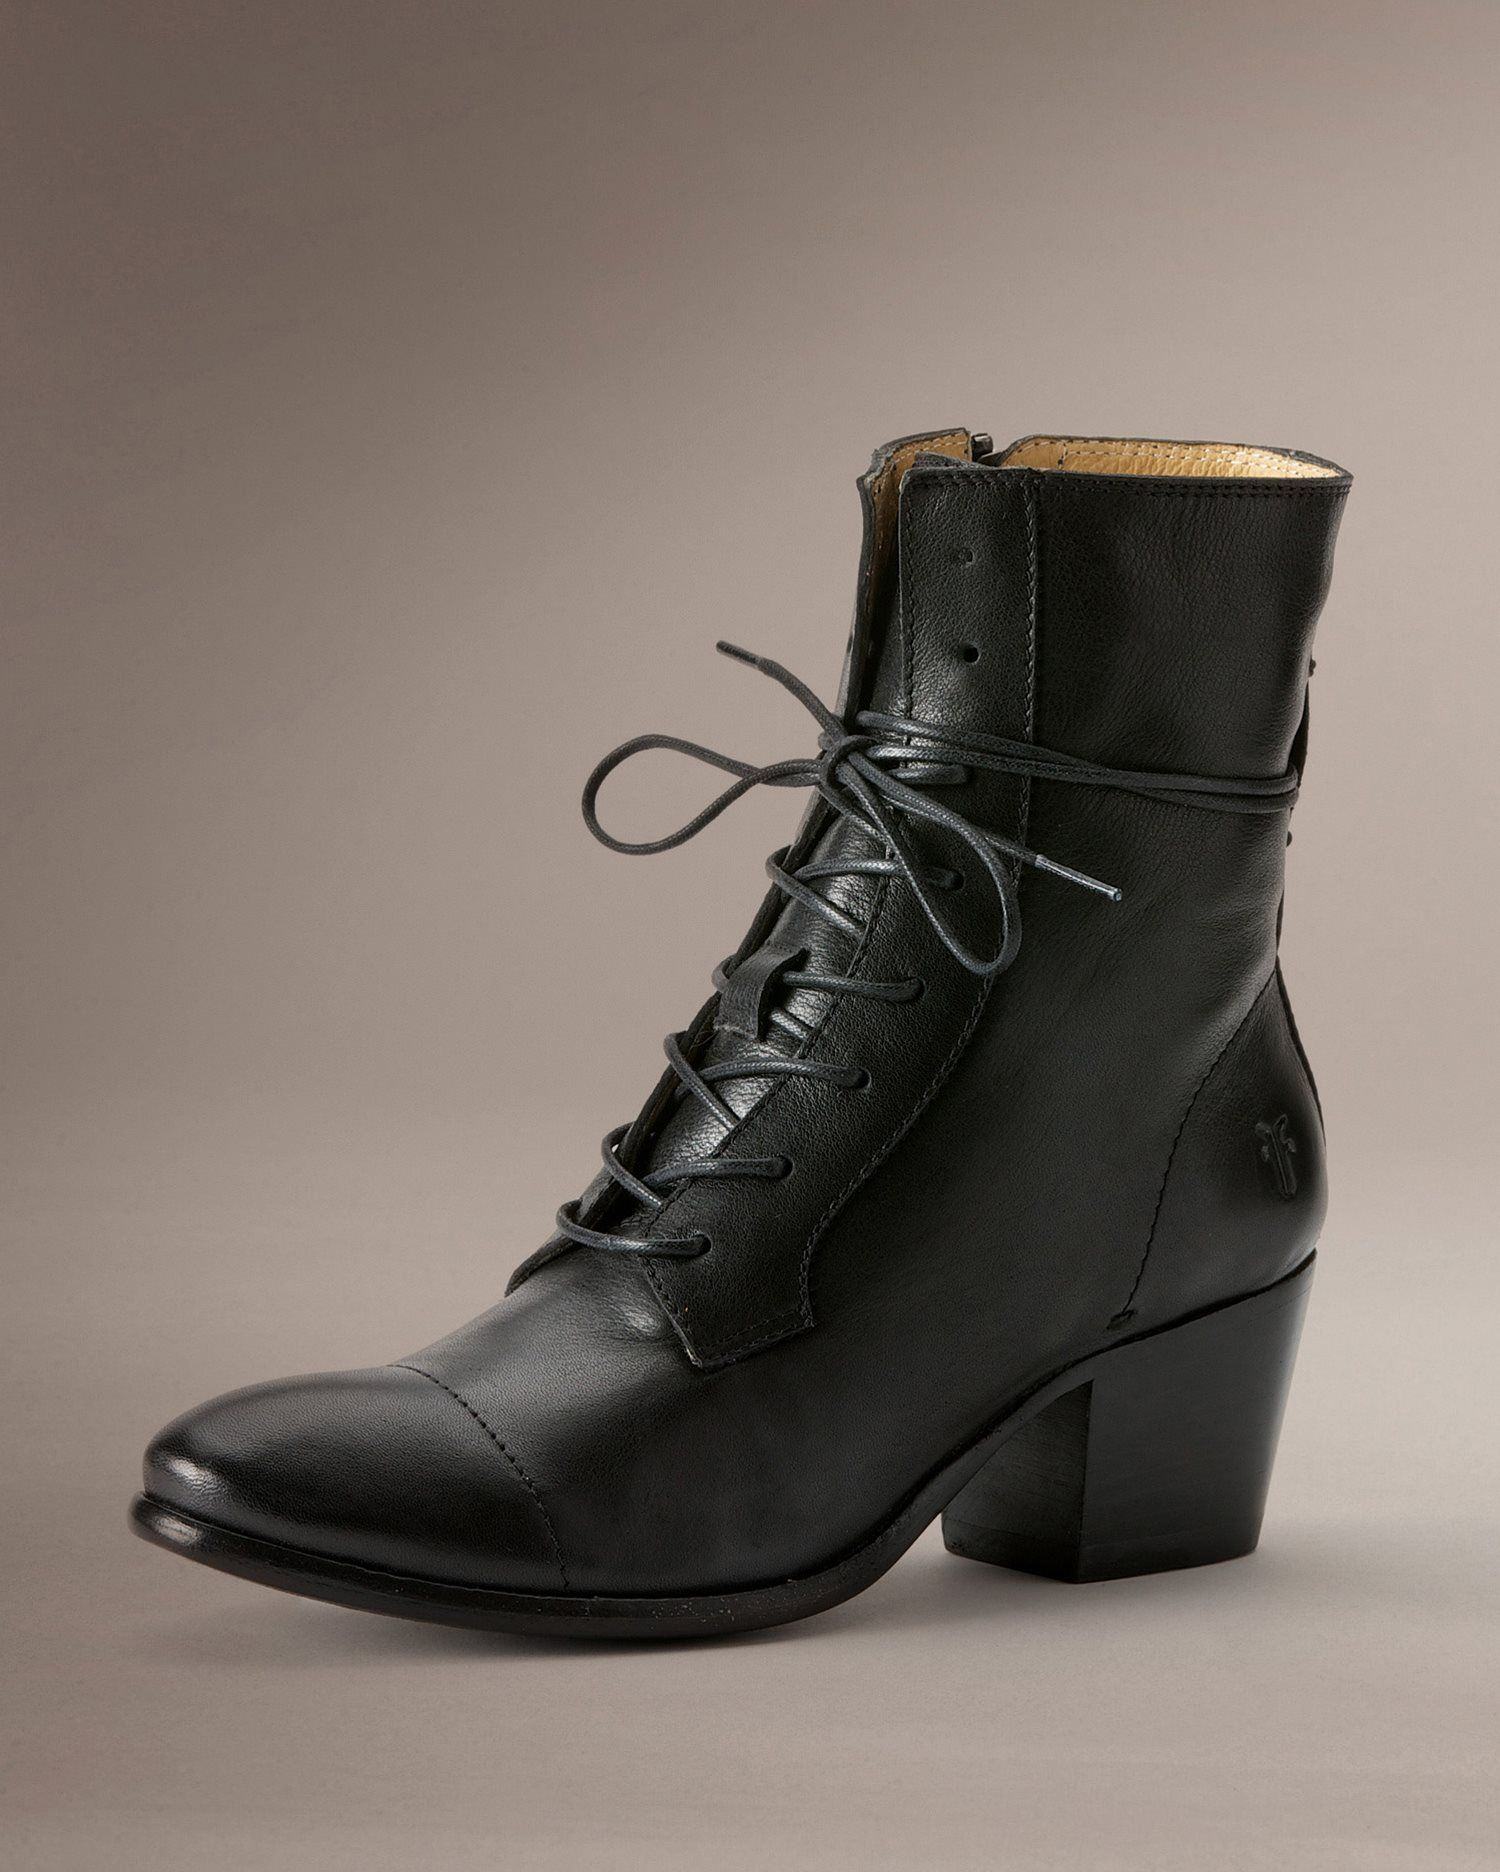 9b0fc7282d Leather Boots for Women - Best Seller. Courtney Lace Up -  Women_Boots_Casuals - The Frye Company $298 -side zipper, no tread